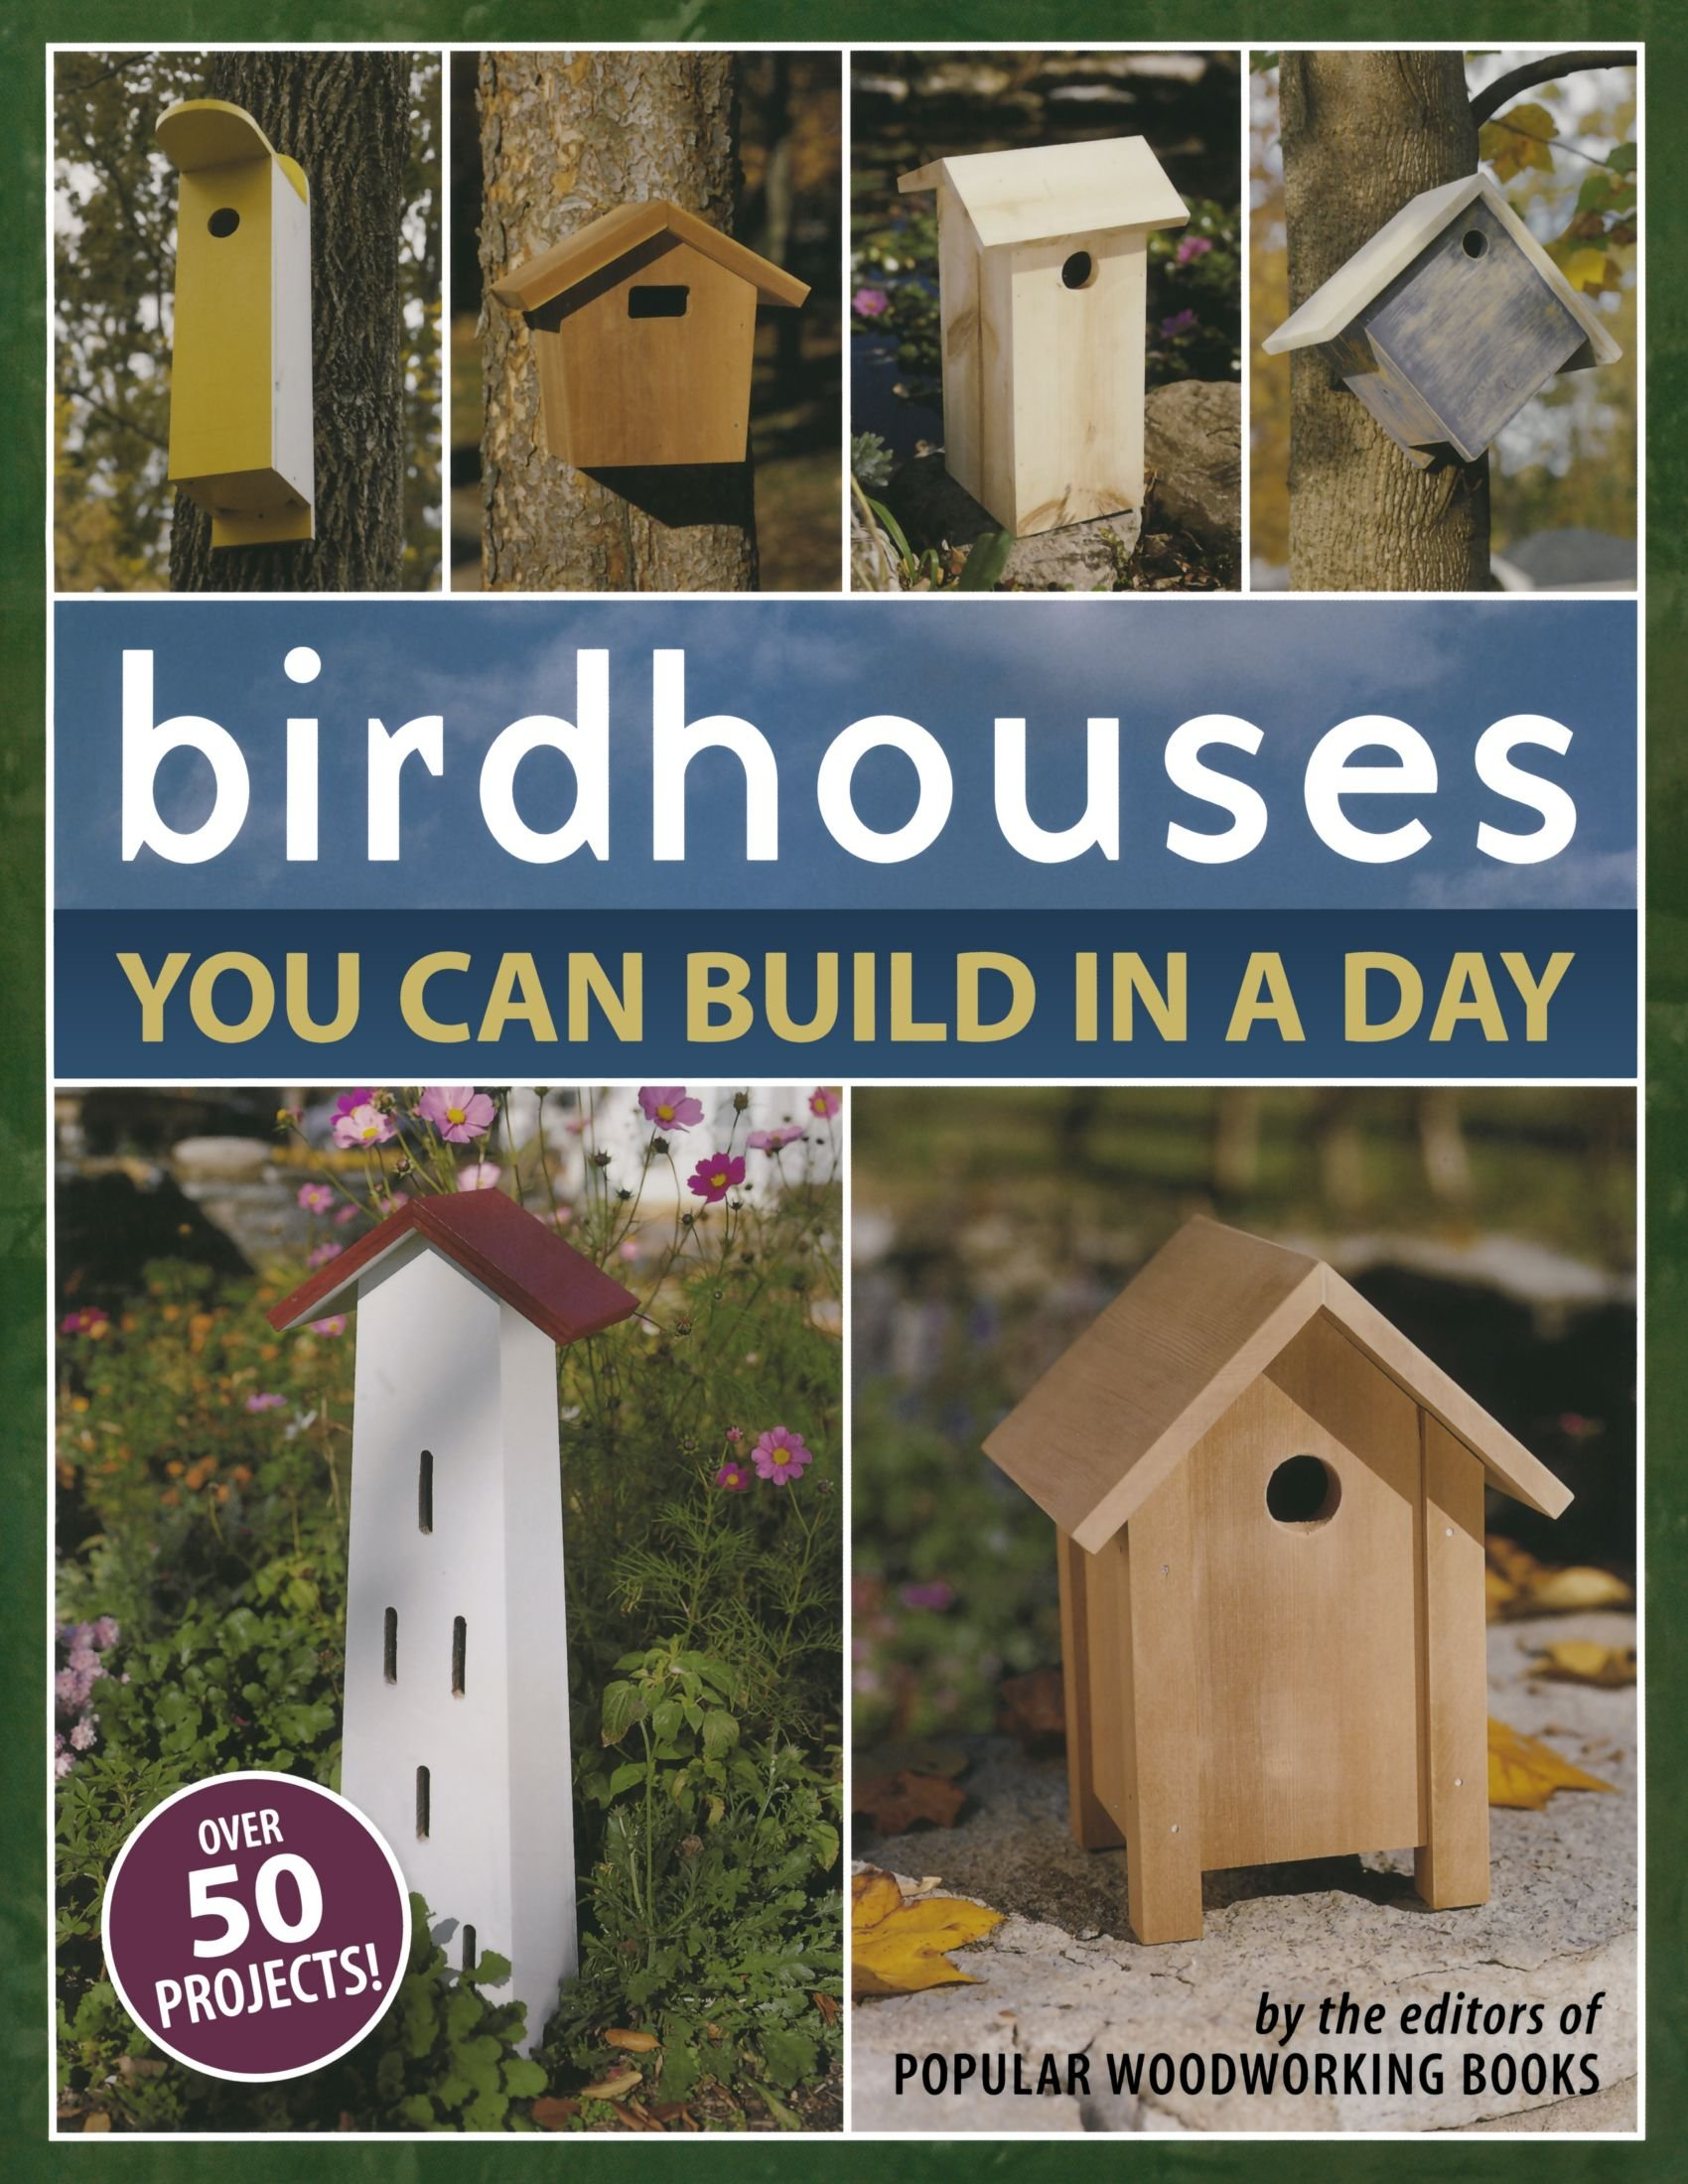 Birdhouses You Can Build in a Day (Popular Woodworking) by Popular Woodworking